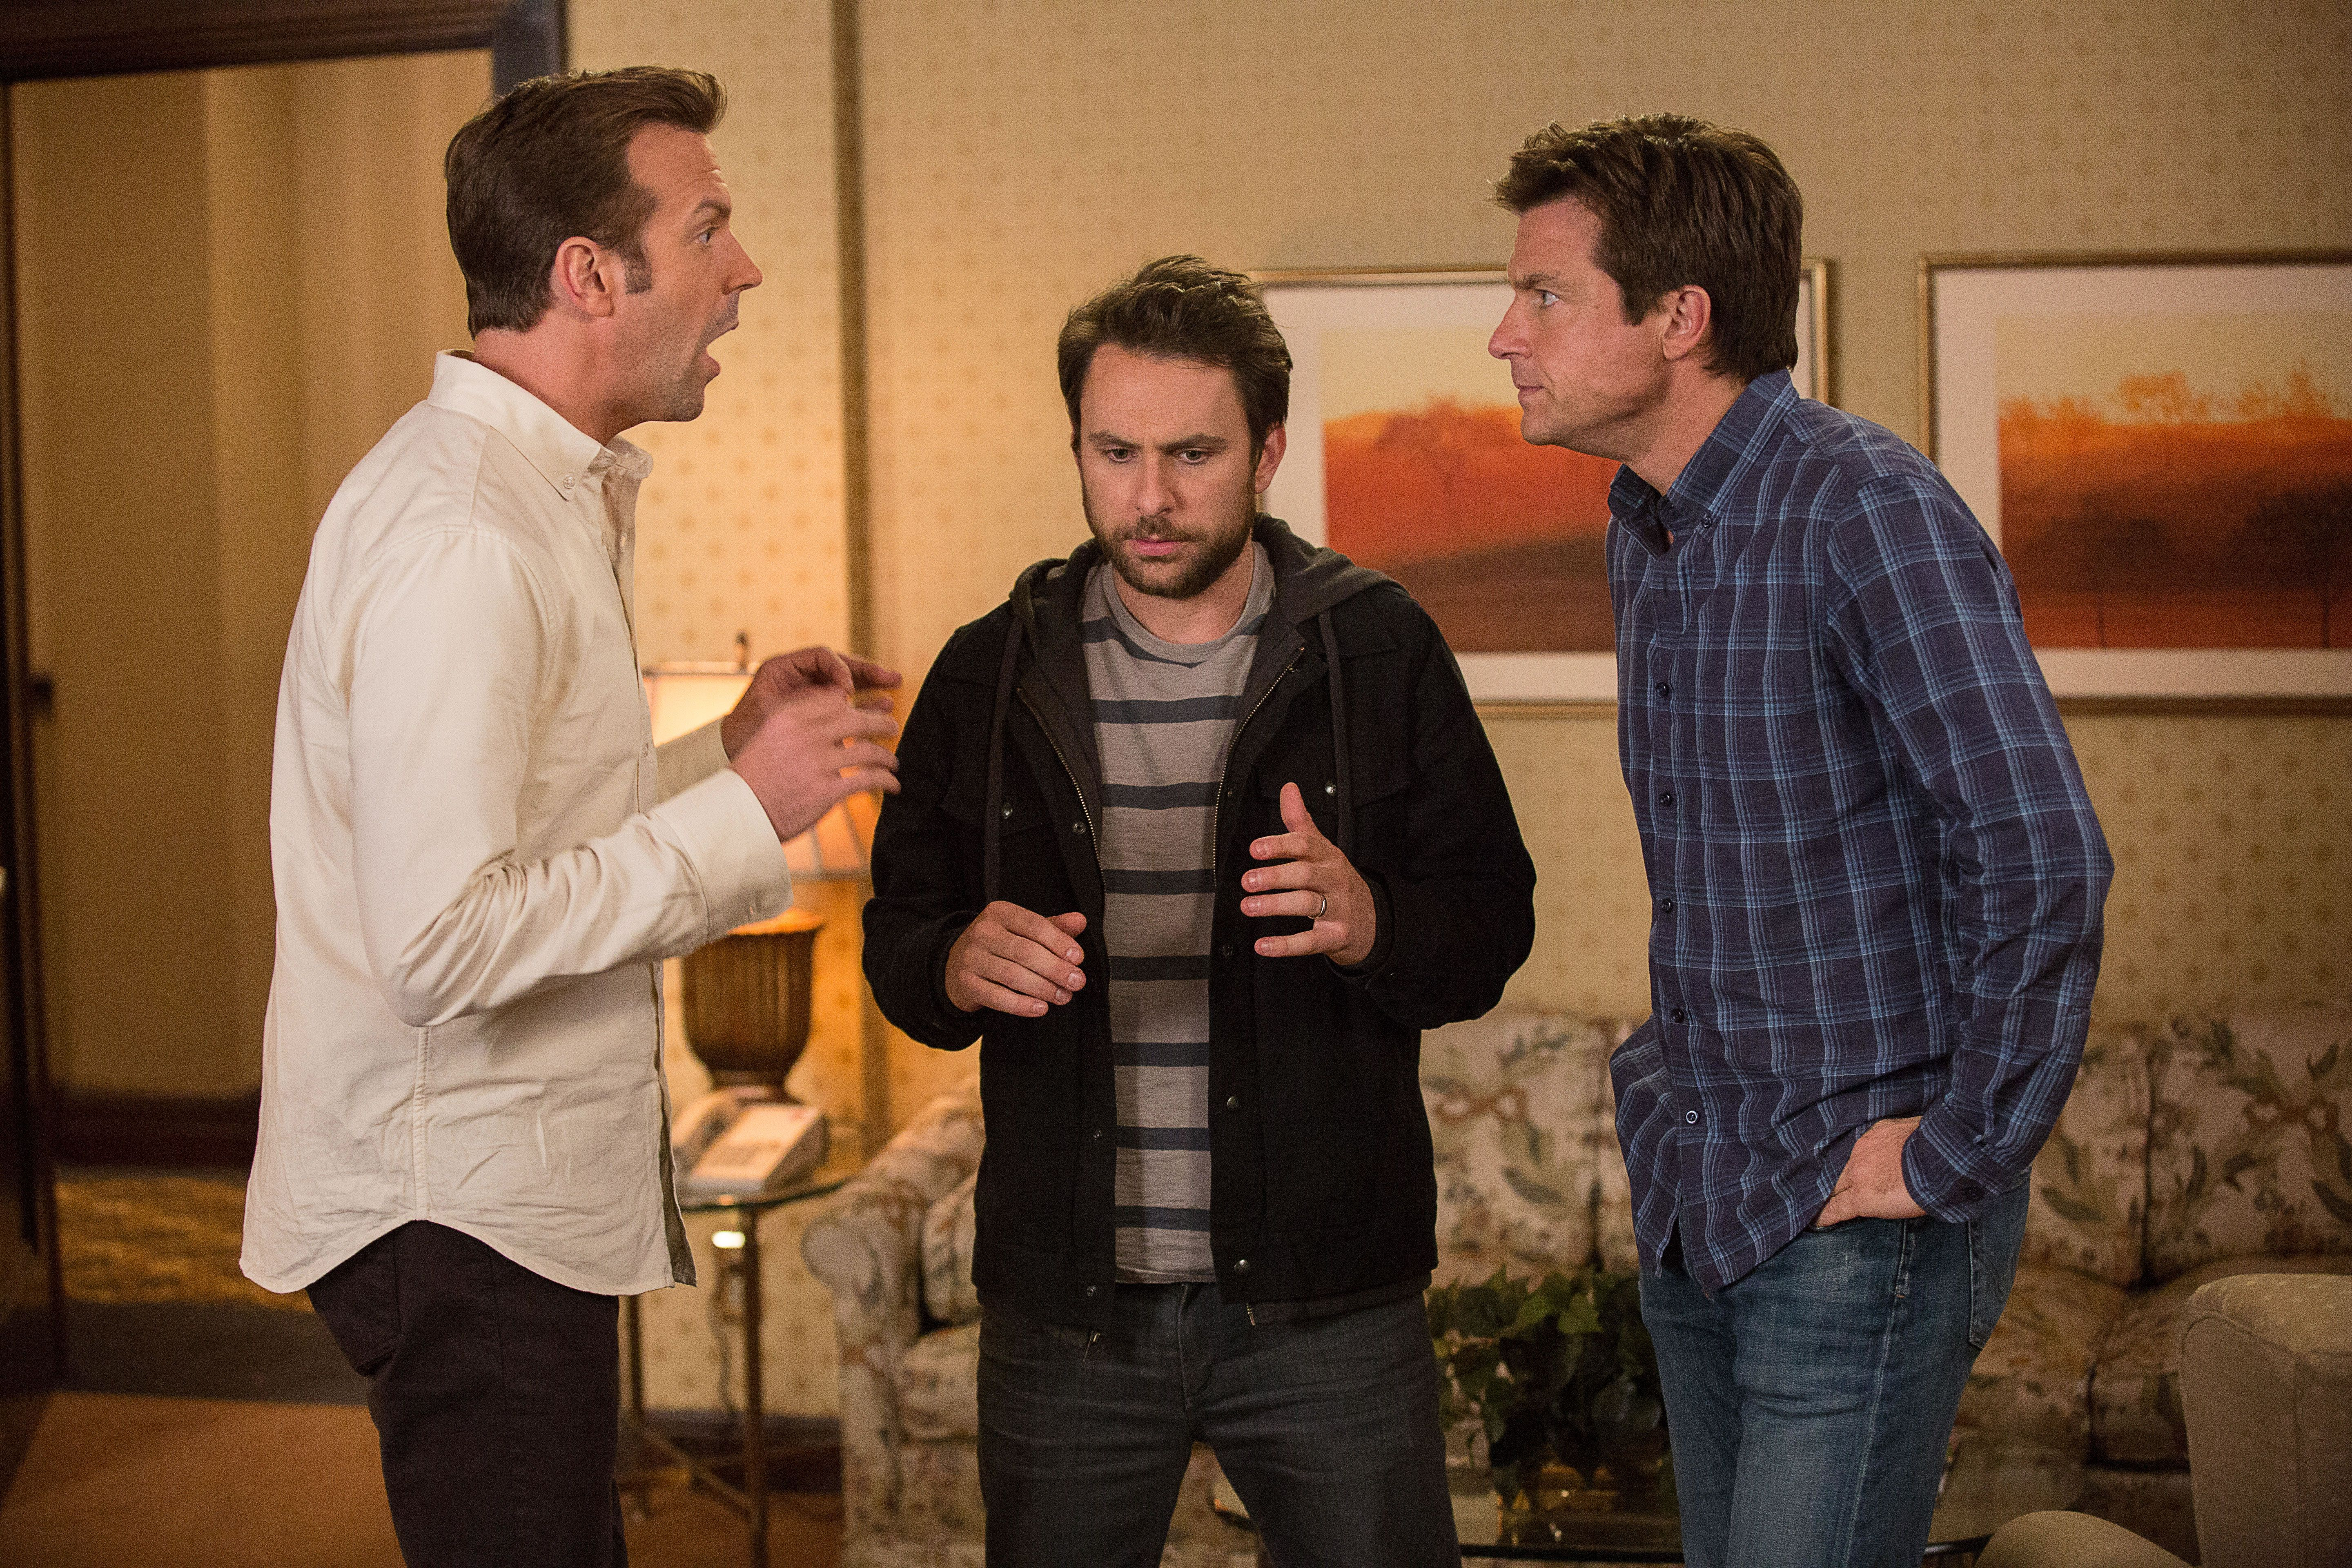 new horrible bosses images featuring jason bateman and horrible bosses 2 bateman day sudeikis 8